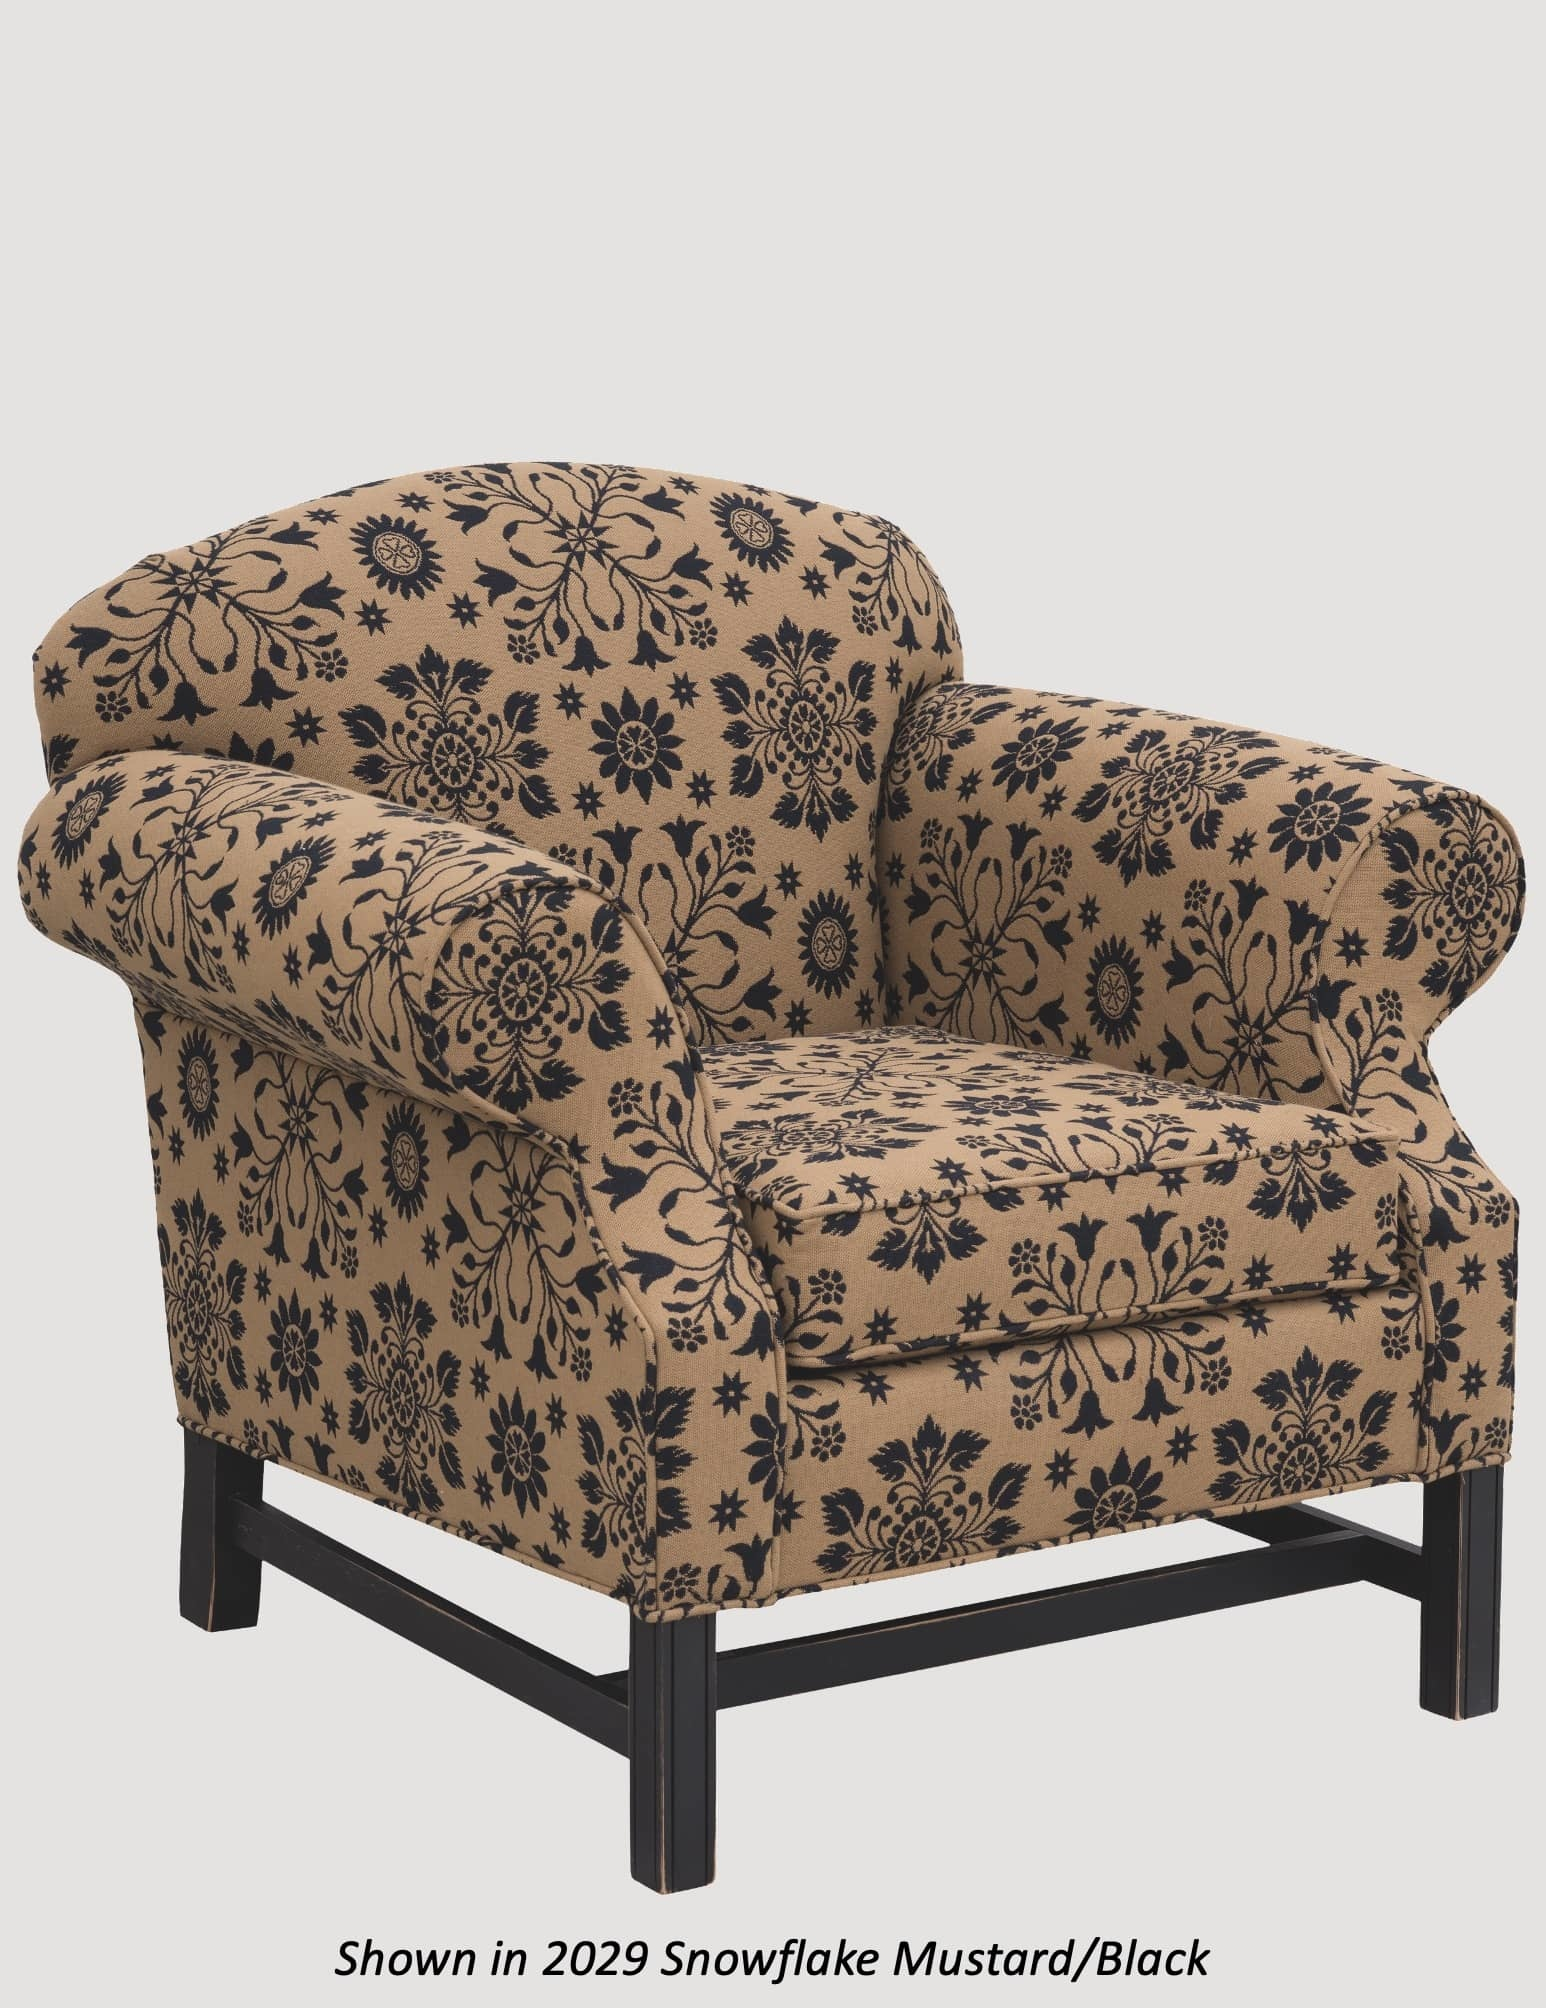 Town & Country Furnishings Stockbridge Chair